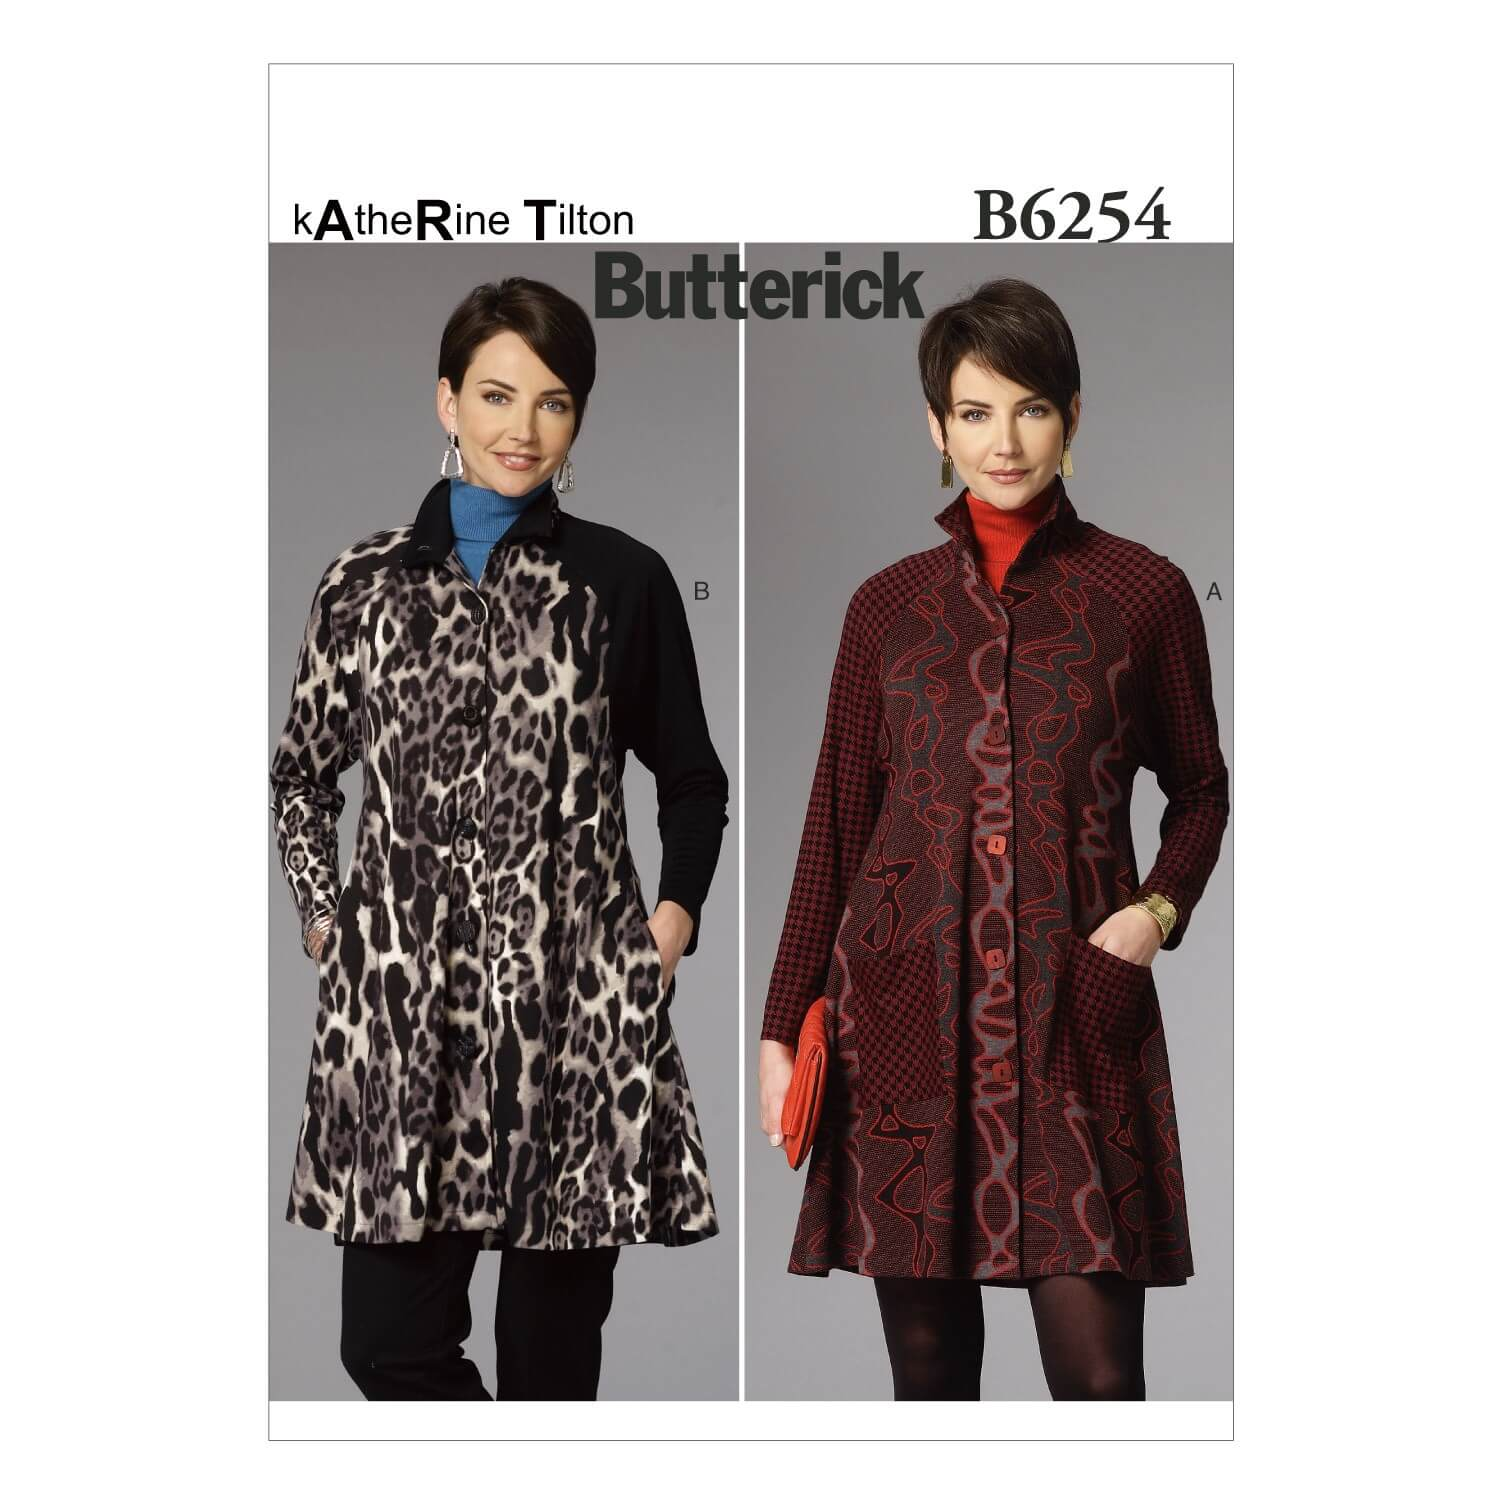 Butterick Sewing Pattern 6254 Misses' Outdoor Coat Dress